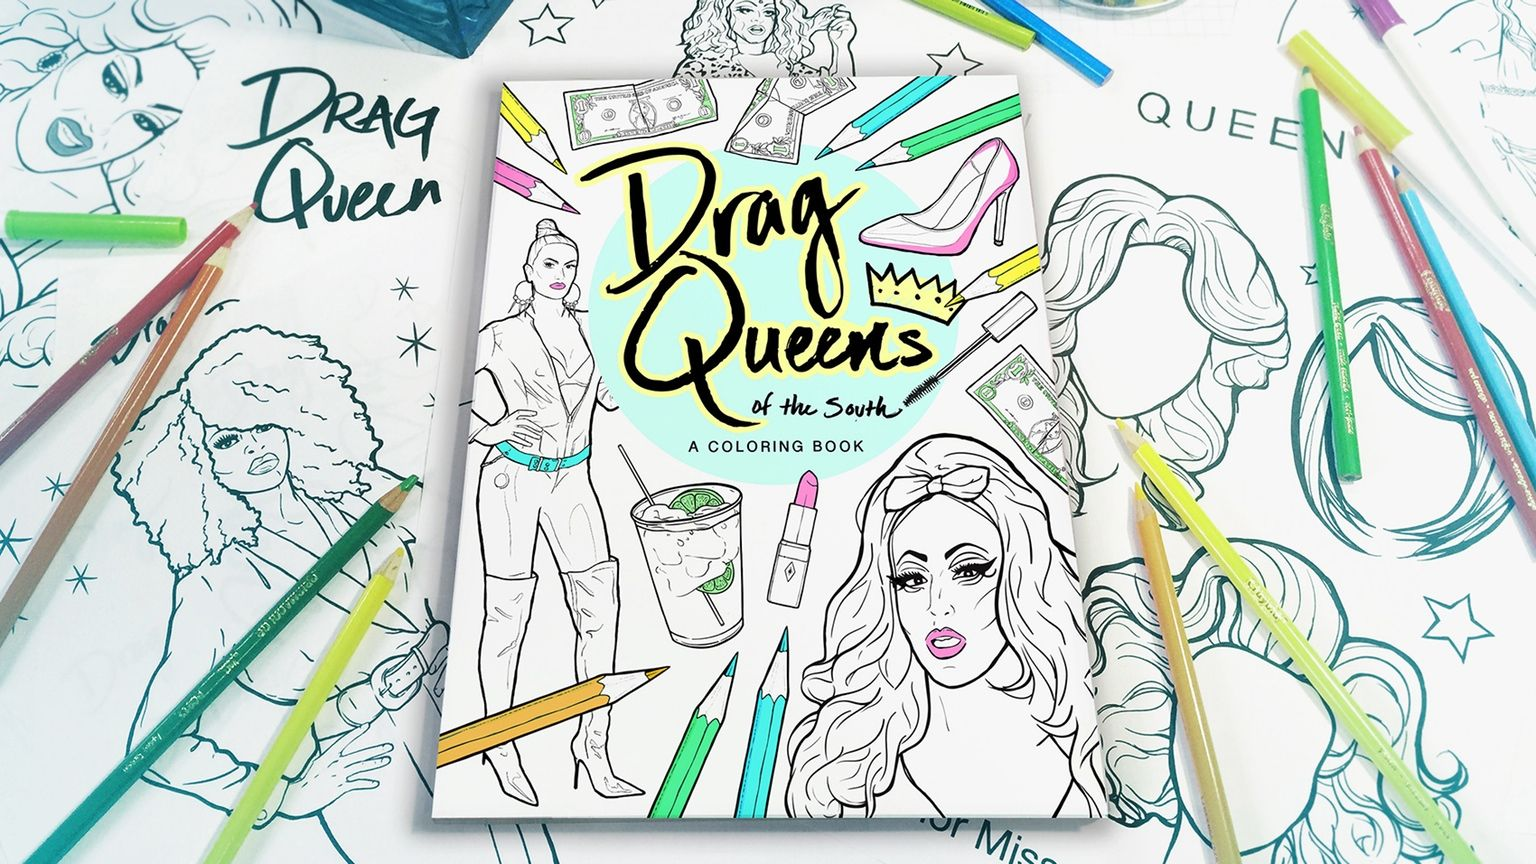 new #kickstarter project #crowdfunding Make 100: Drag Queens of the South: A Coloring Book by Kasten McClellan Searles